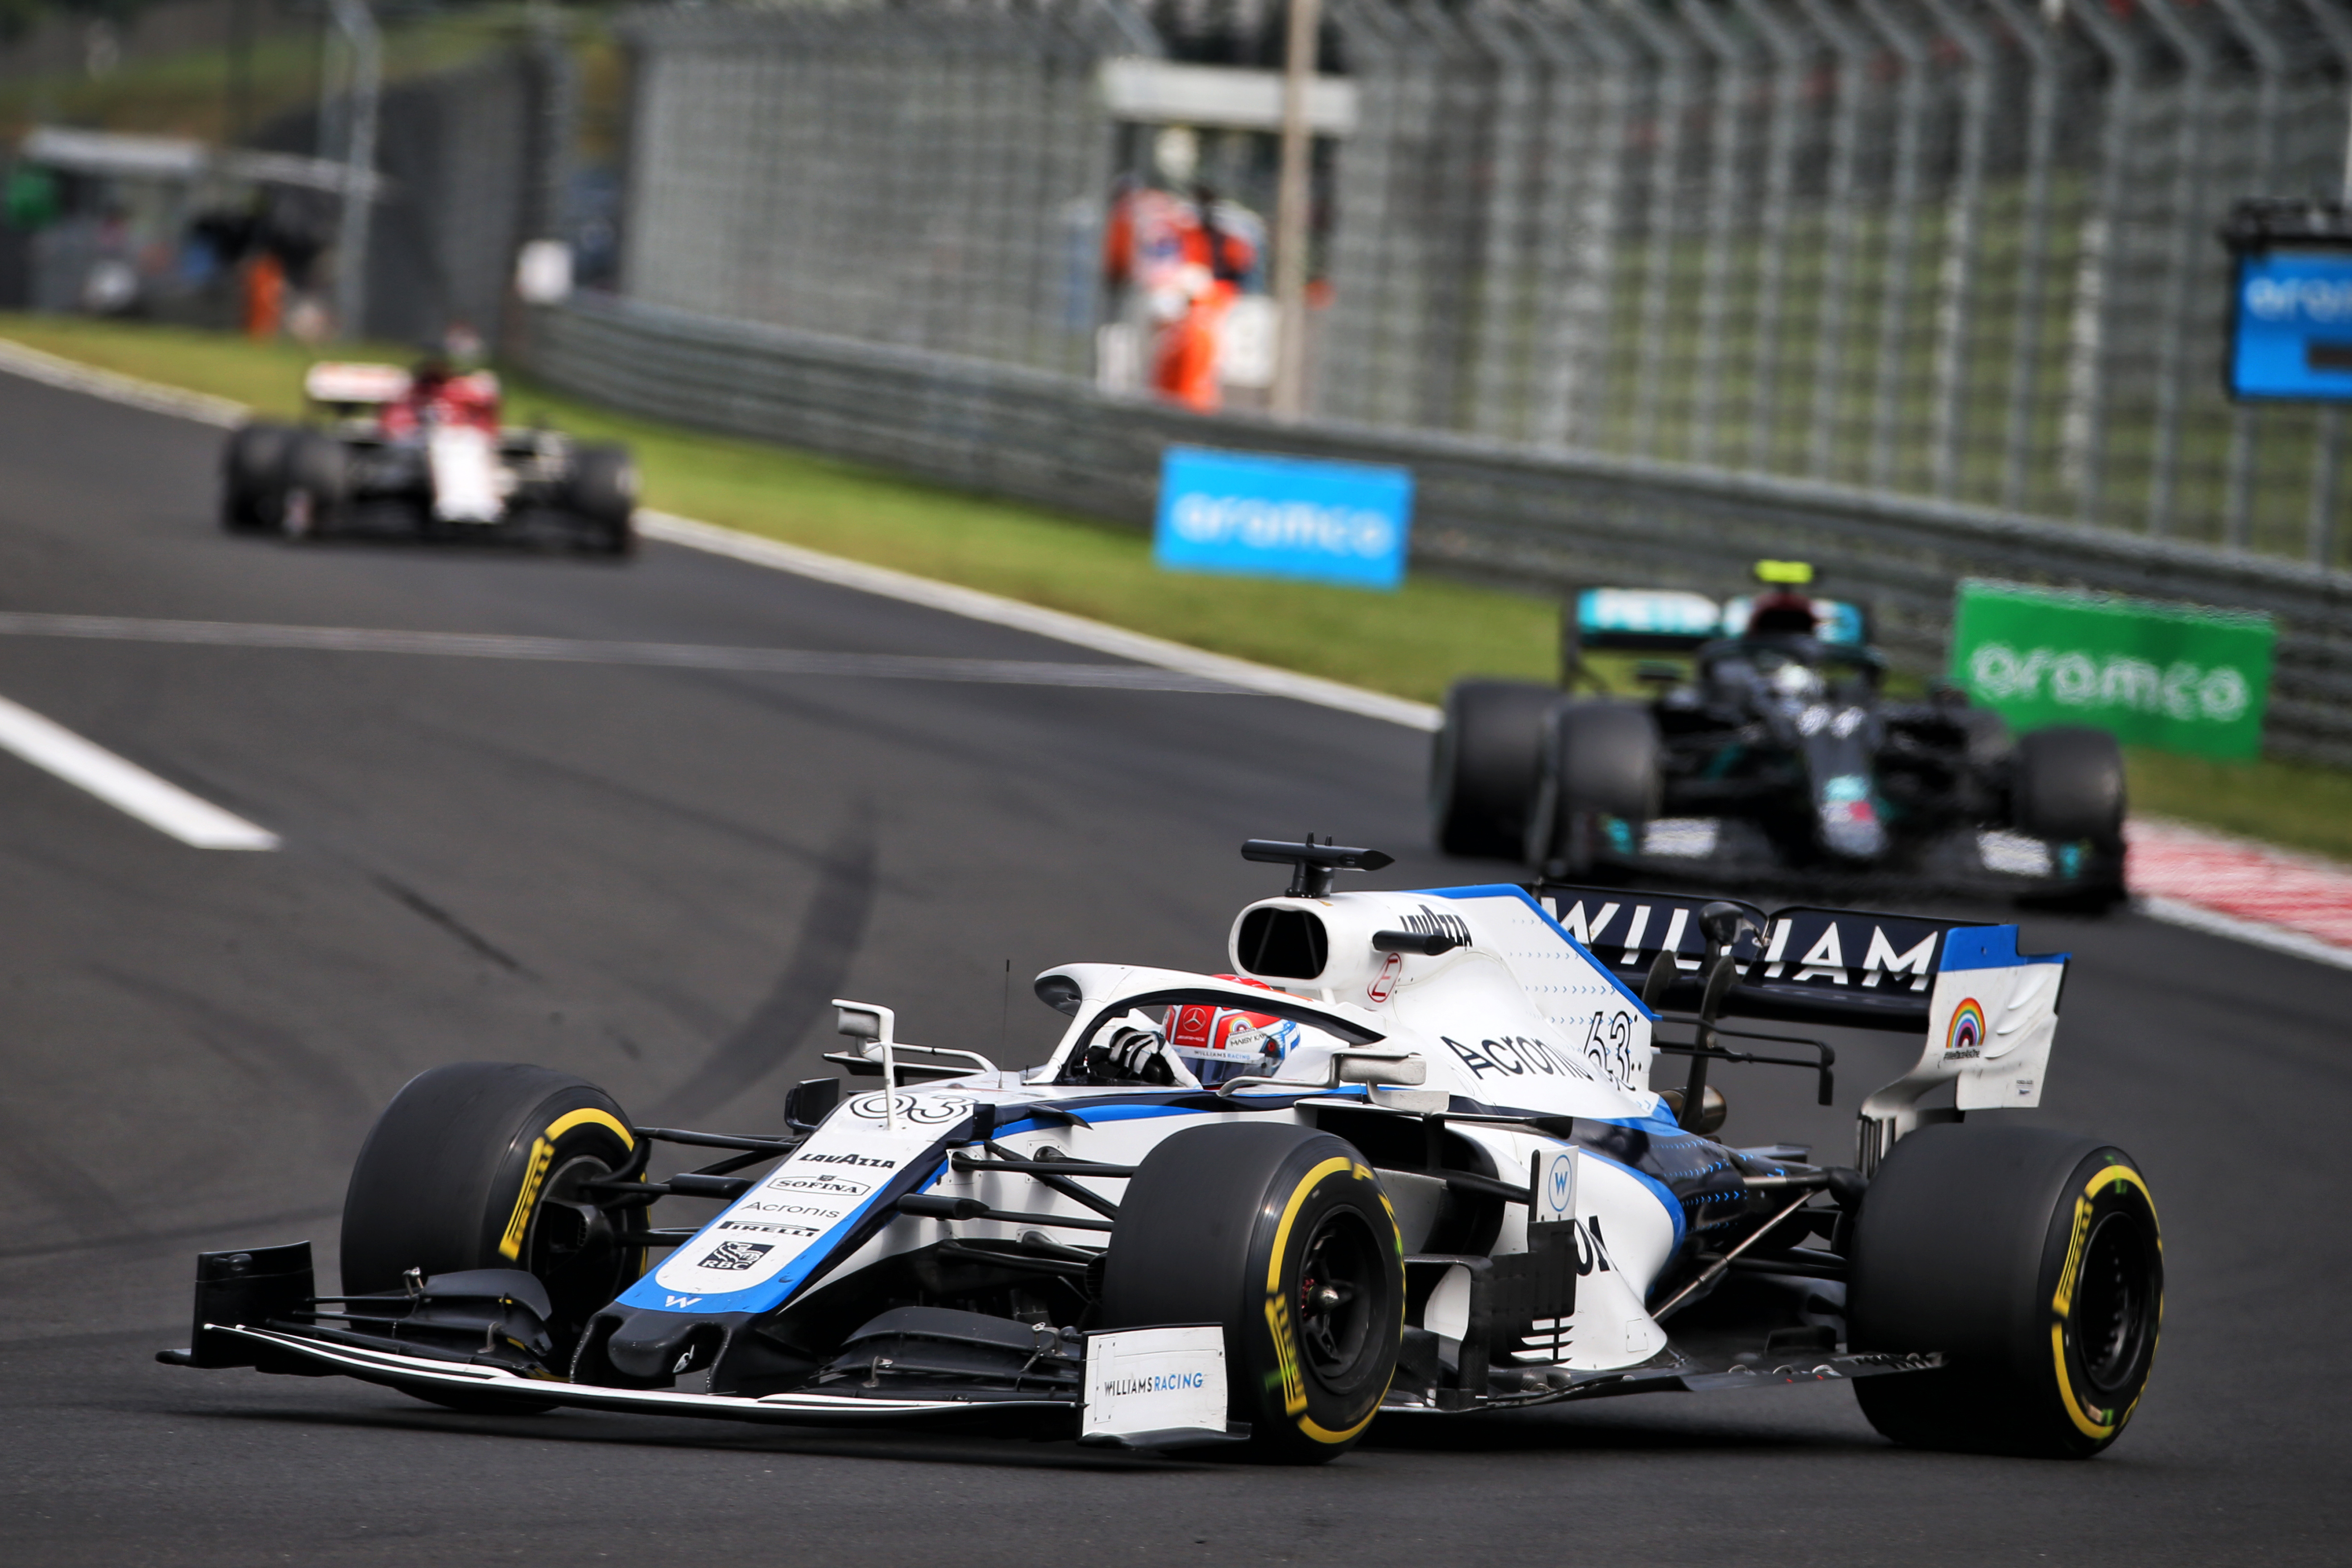 George Russell Williams Hungarian Grand Prix 2020